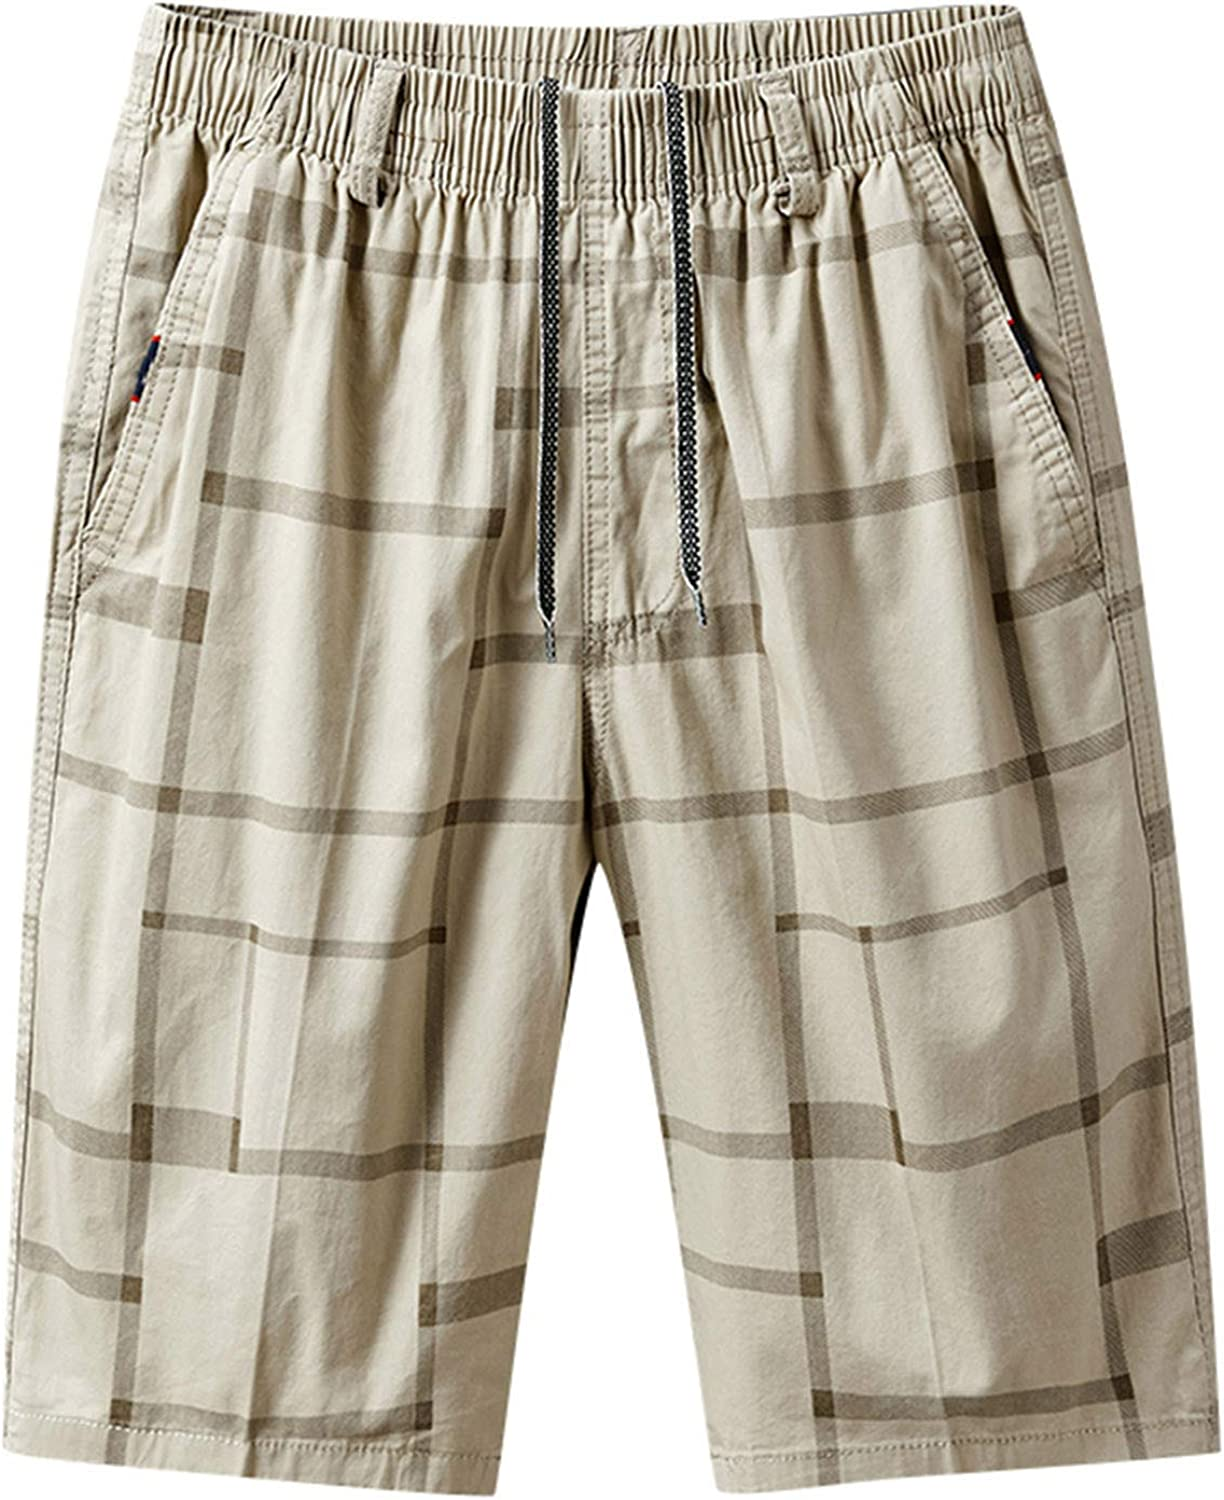 DIOMOR Mens Summer Casual Board Shorts Drawstring Lightweight Quick Dry Pleated Trunks Big and Tall Short Pants with Pocket